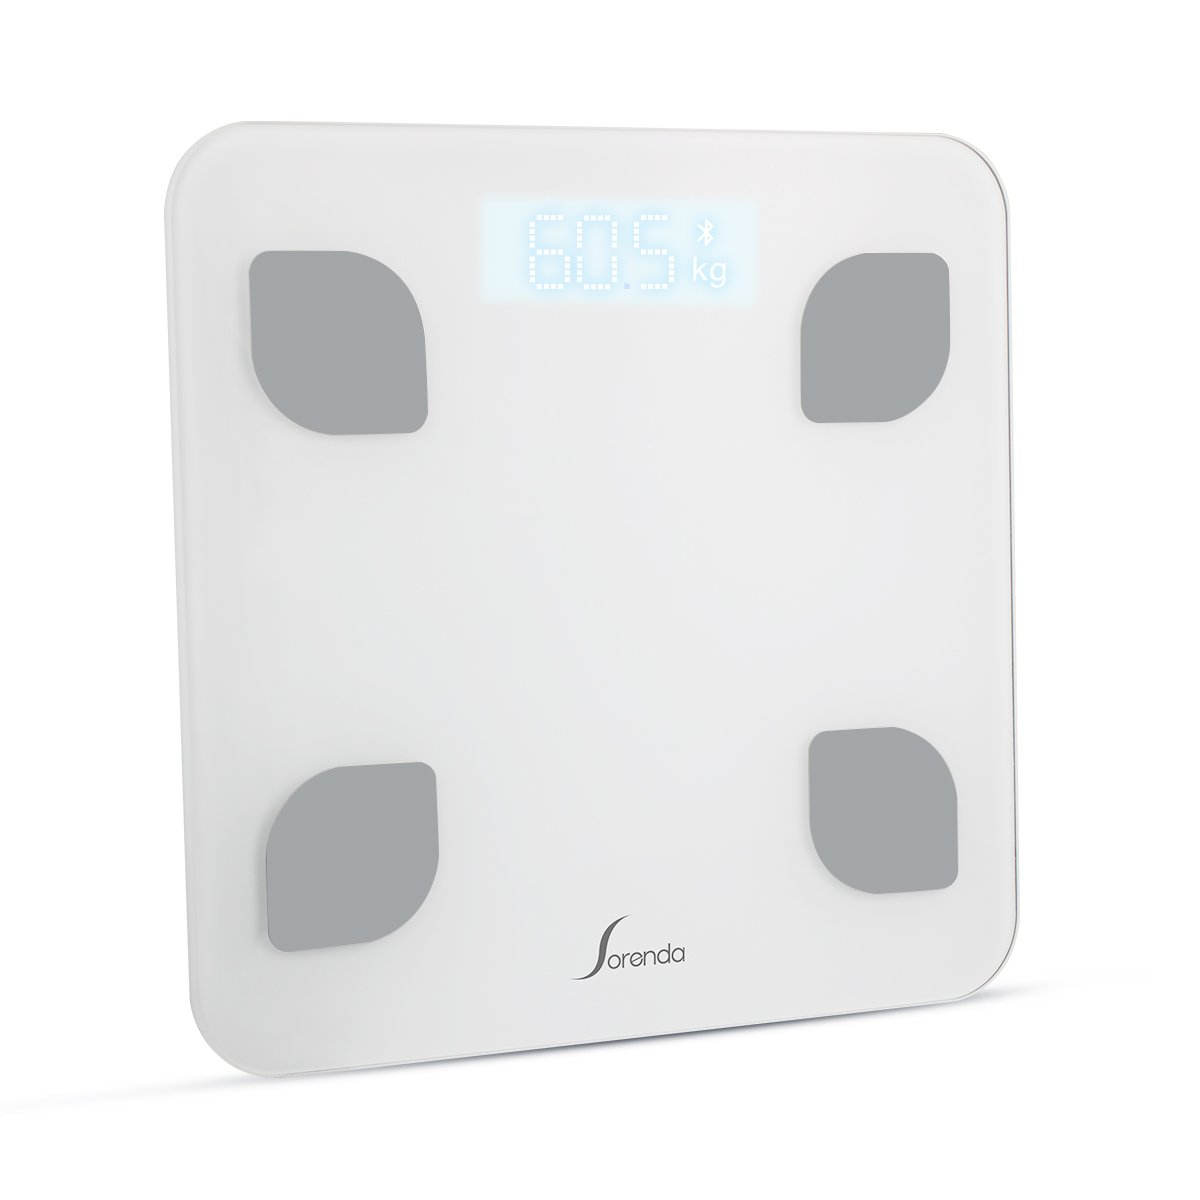 Yasolote Bluetooth Digital Scales for Body Weight, Fat Percentage, Muscle Weight, BMI, BMR, Bone Mass, Moisture Content, Visceral Fat Coefficient Calculation, Smart Health Manager with IOS/ Android APP Control